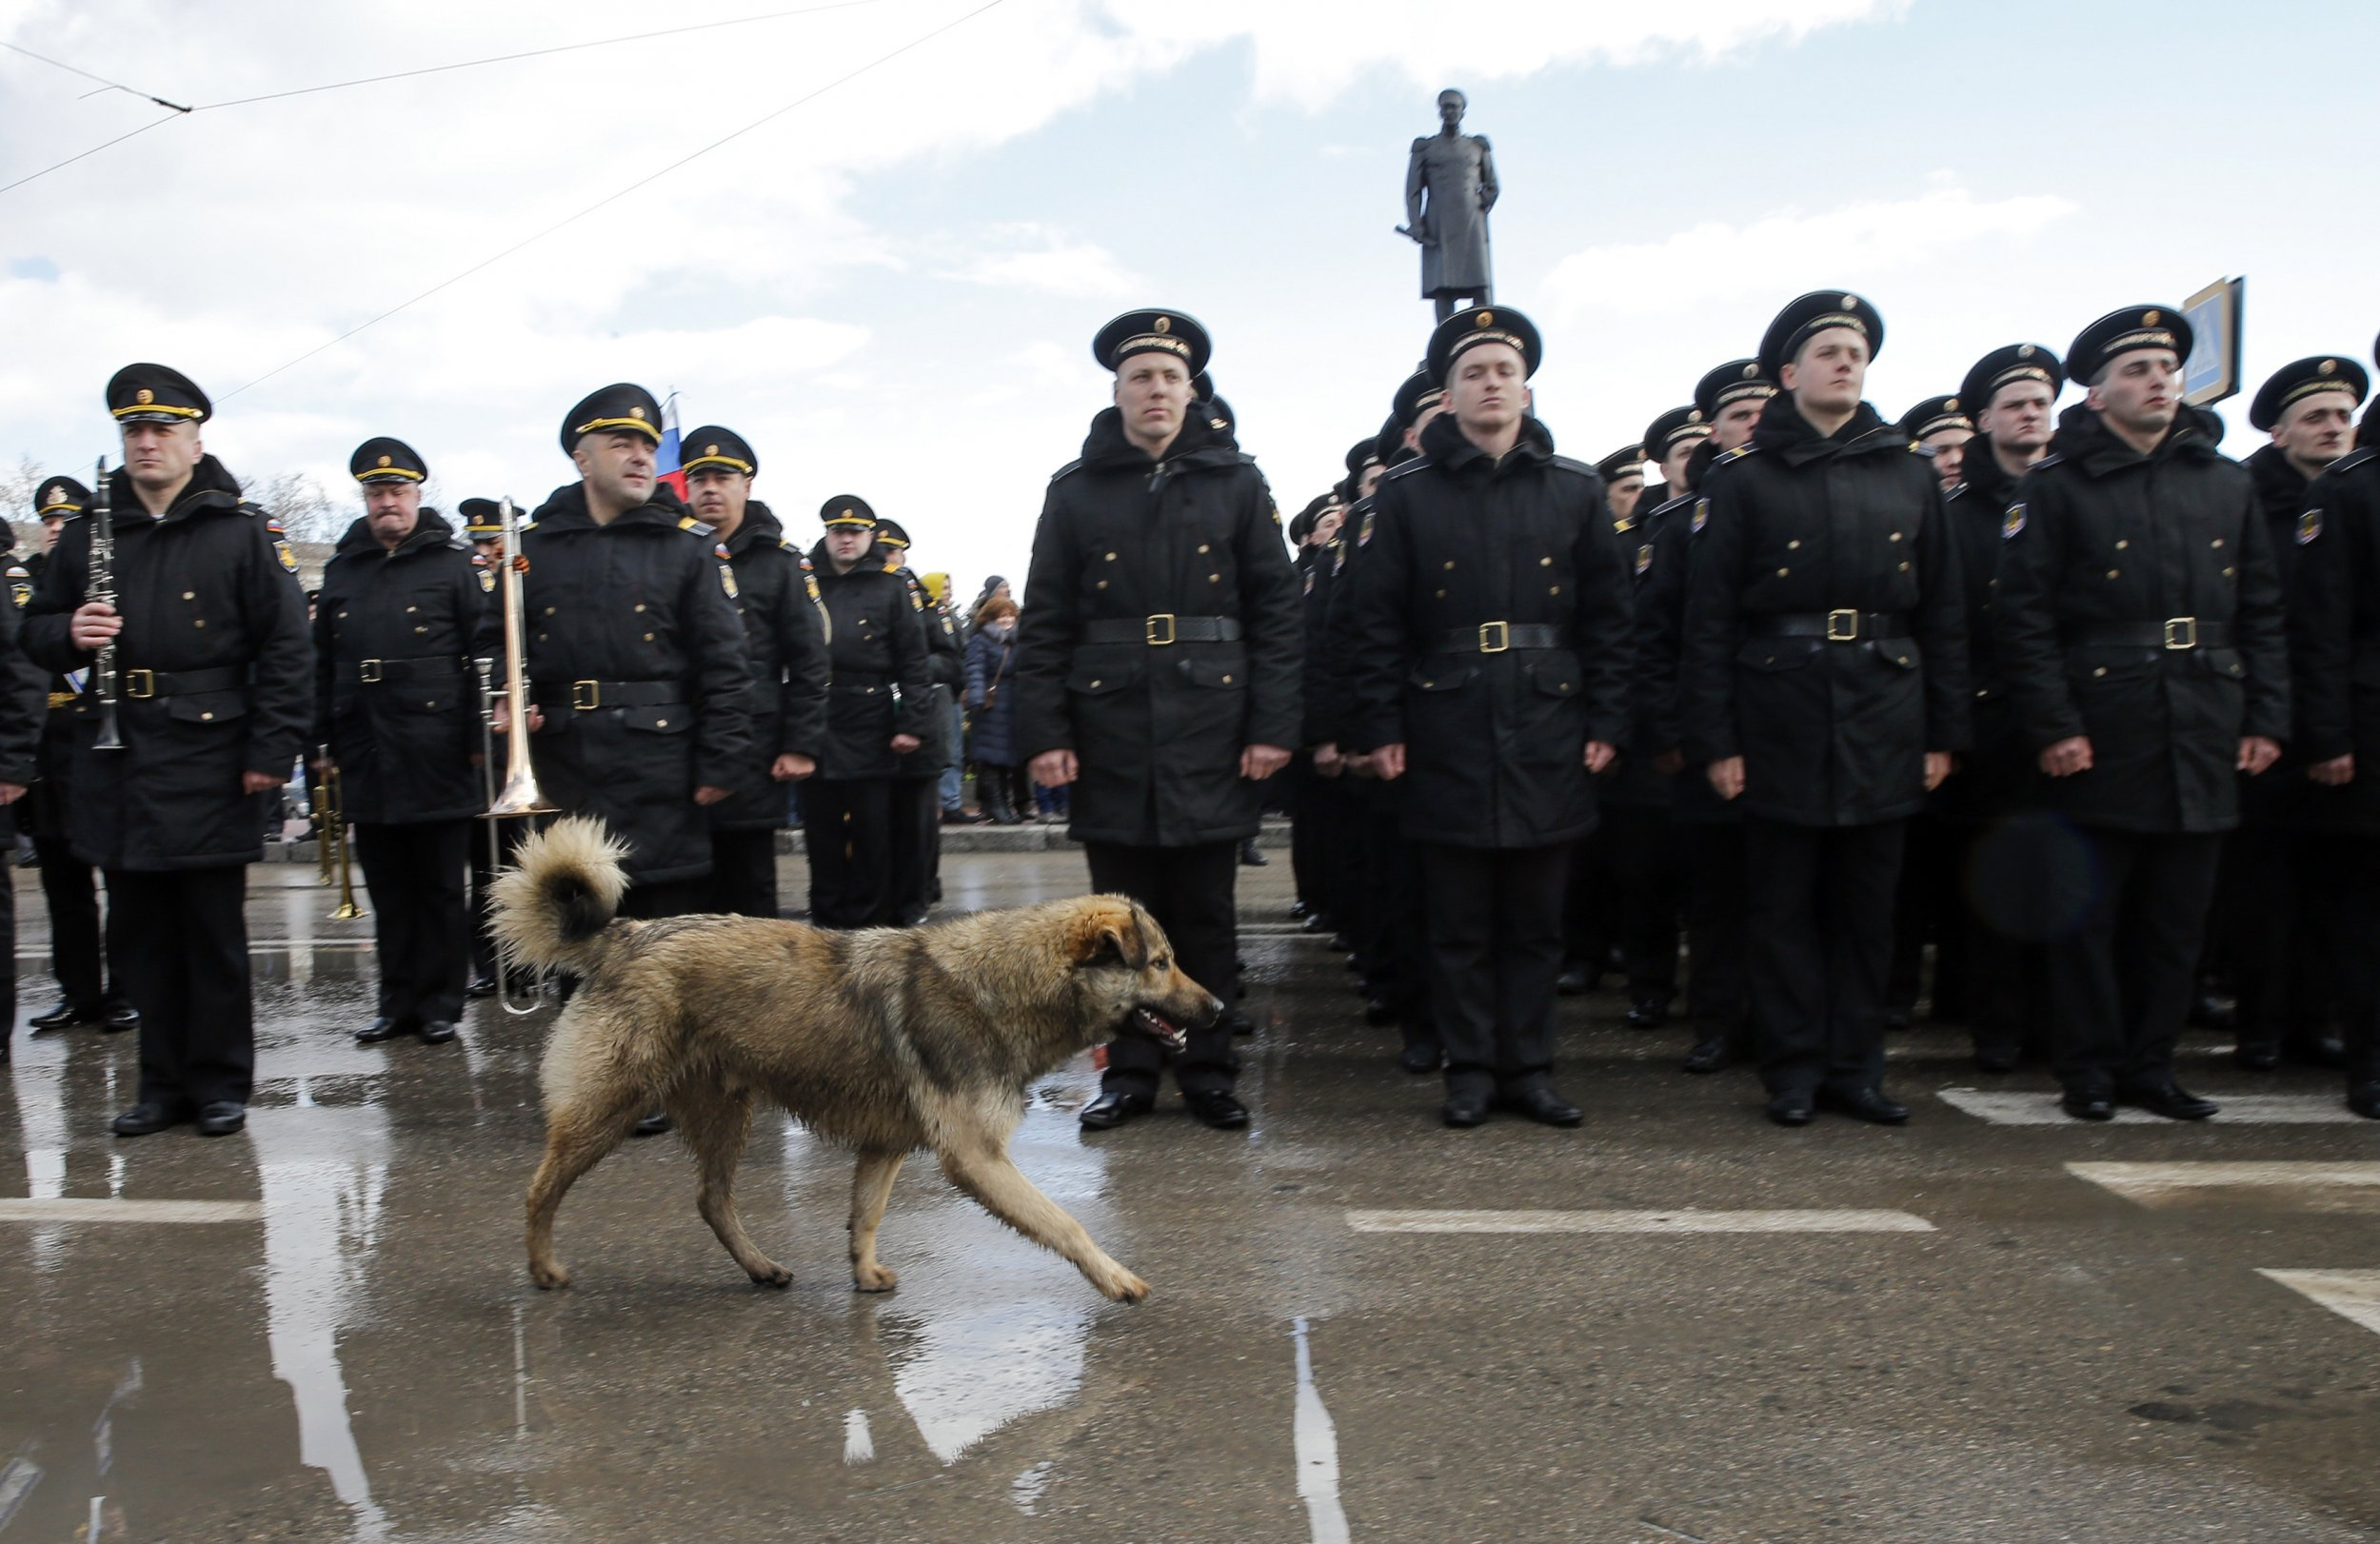 Russia Begins Military Drill in Crimea as Ukraine Tension Mounts